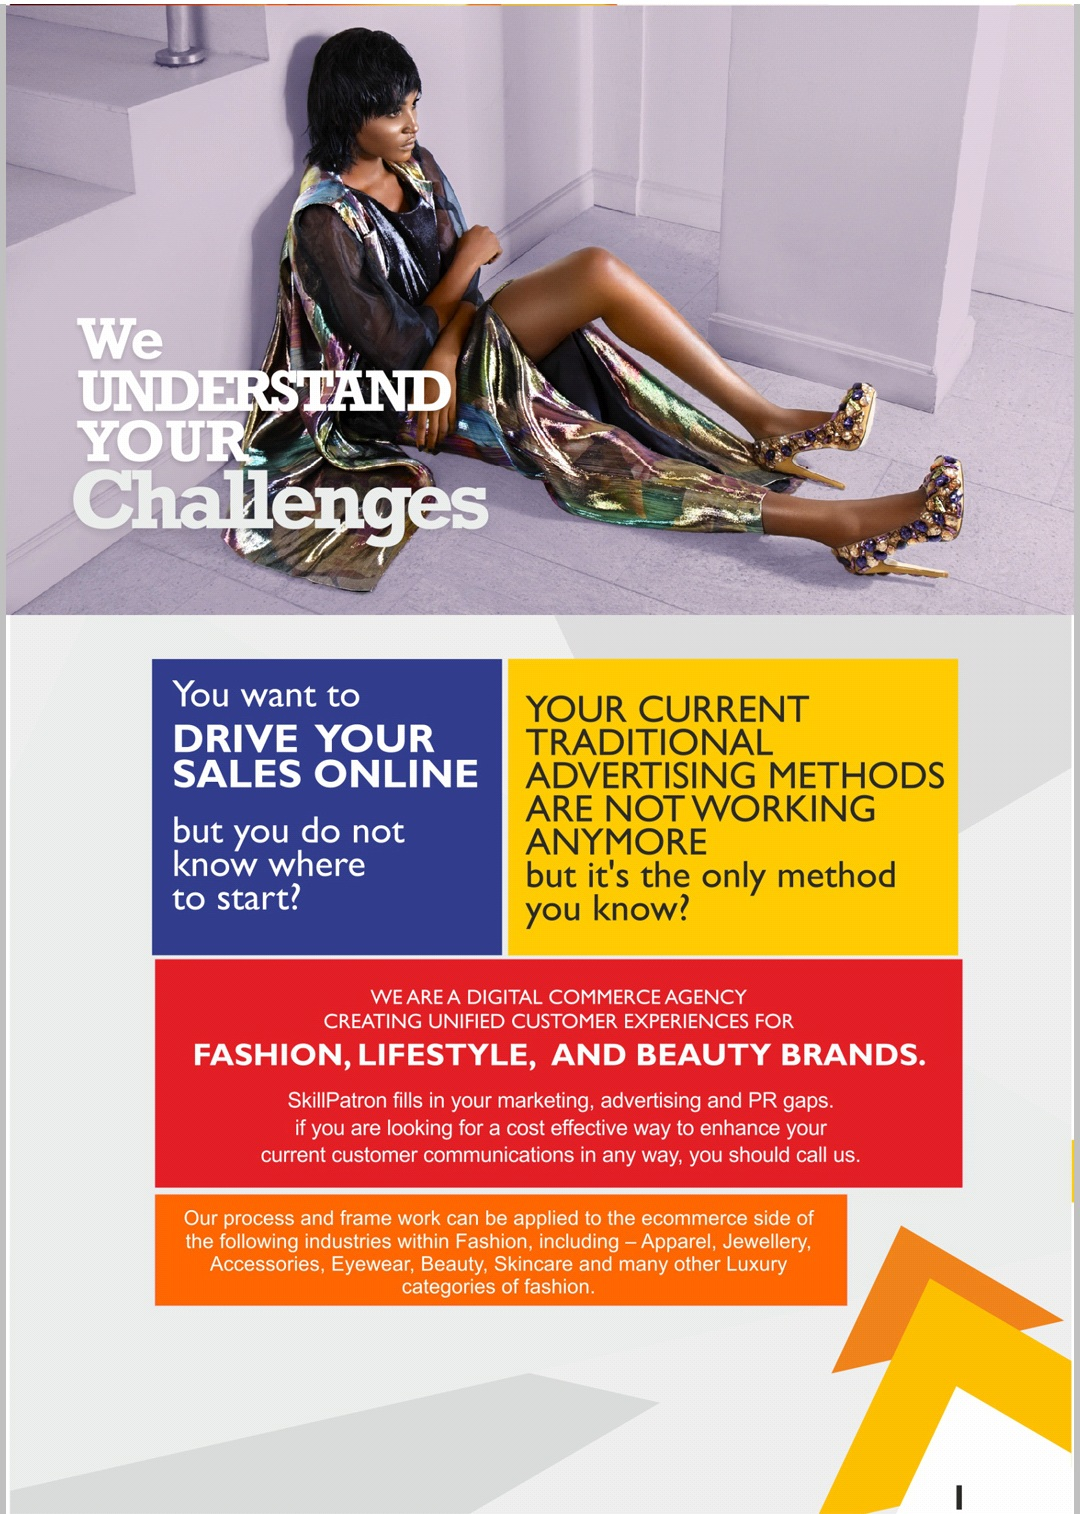 Product Photography Photos from Product Photographers in Lagos | Fashion Digital Sales, Marketing, SEO & PR Agency